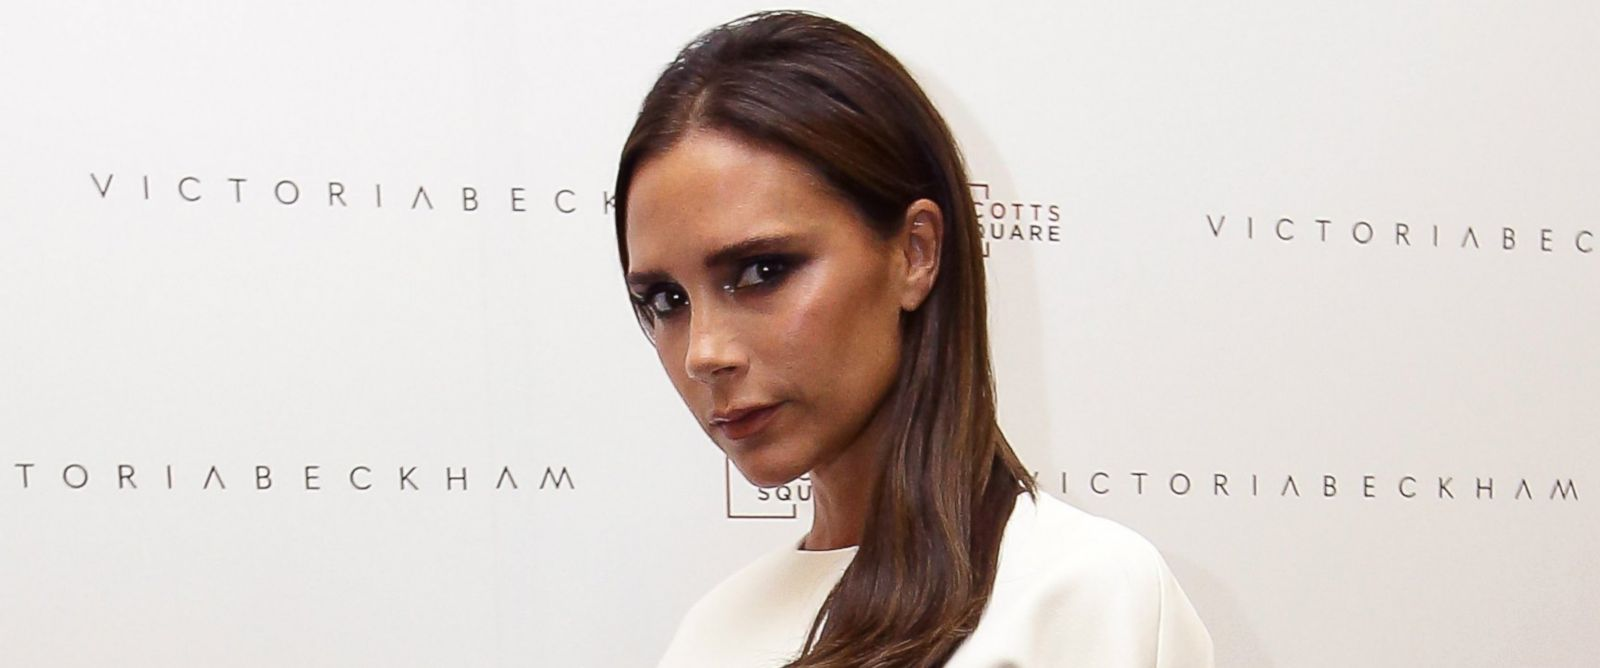 PHOTO: Victoria Beckham poses for a photo at On Pedder at Scotts Square on May 12, 2014 in Singapore.